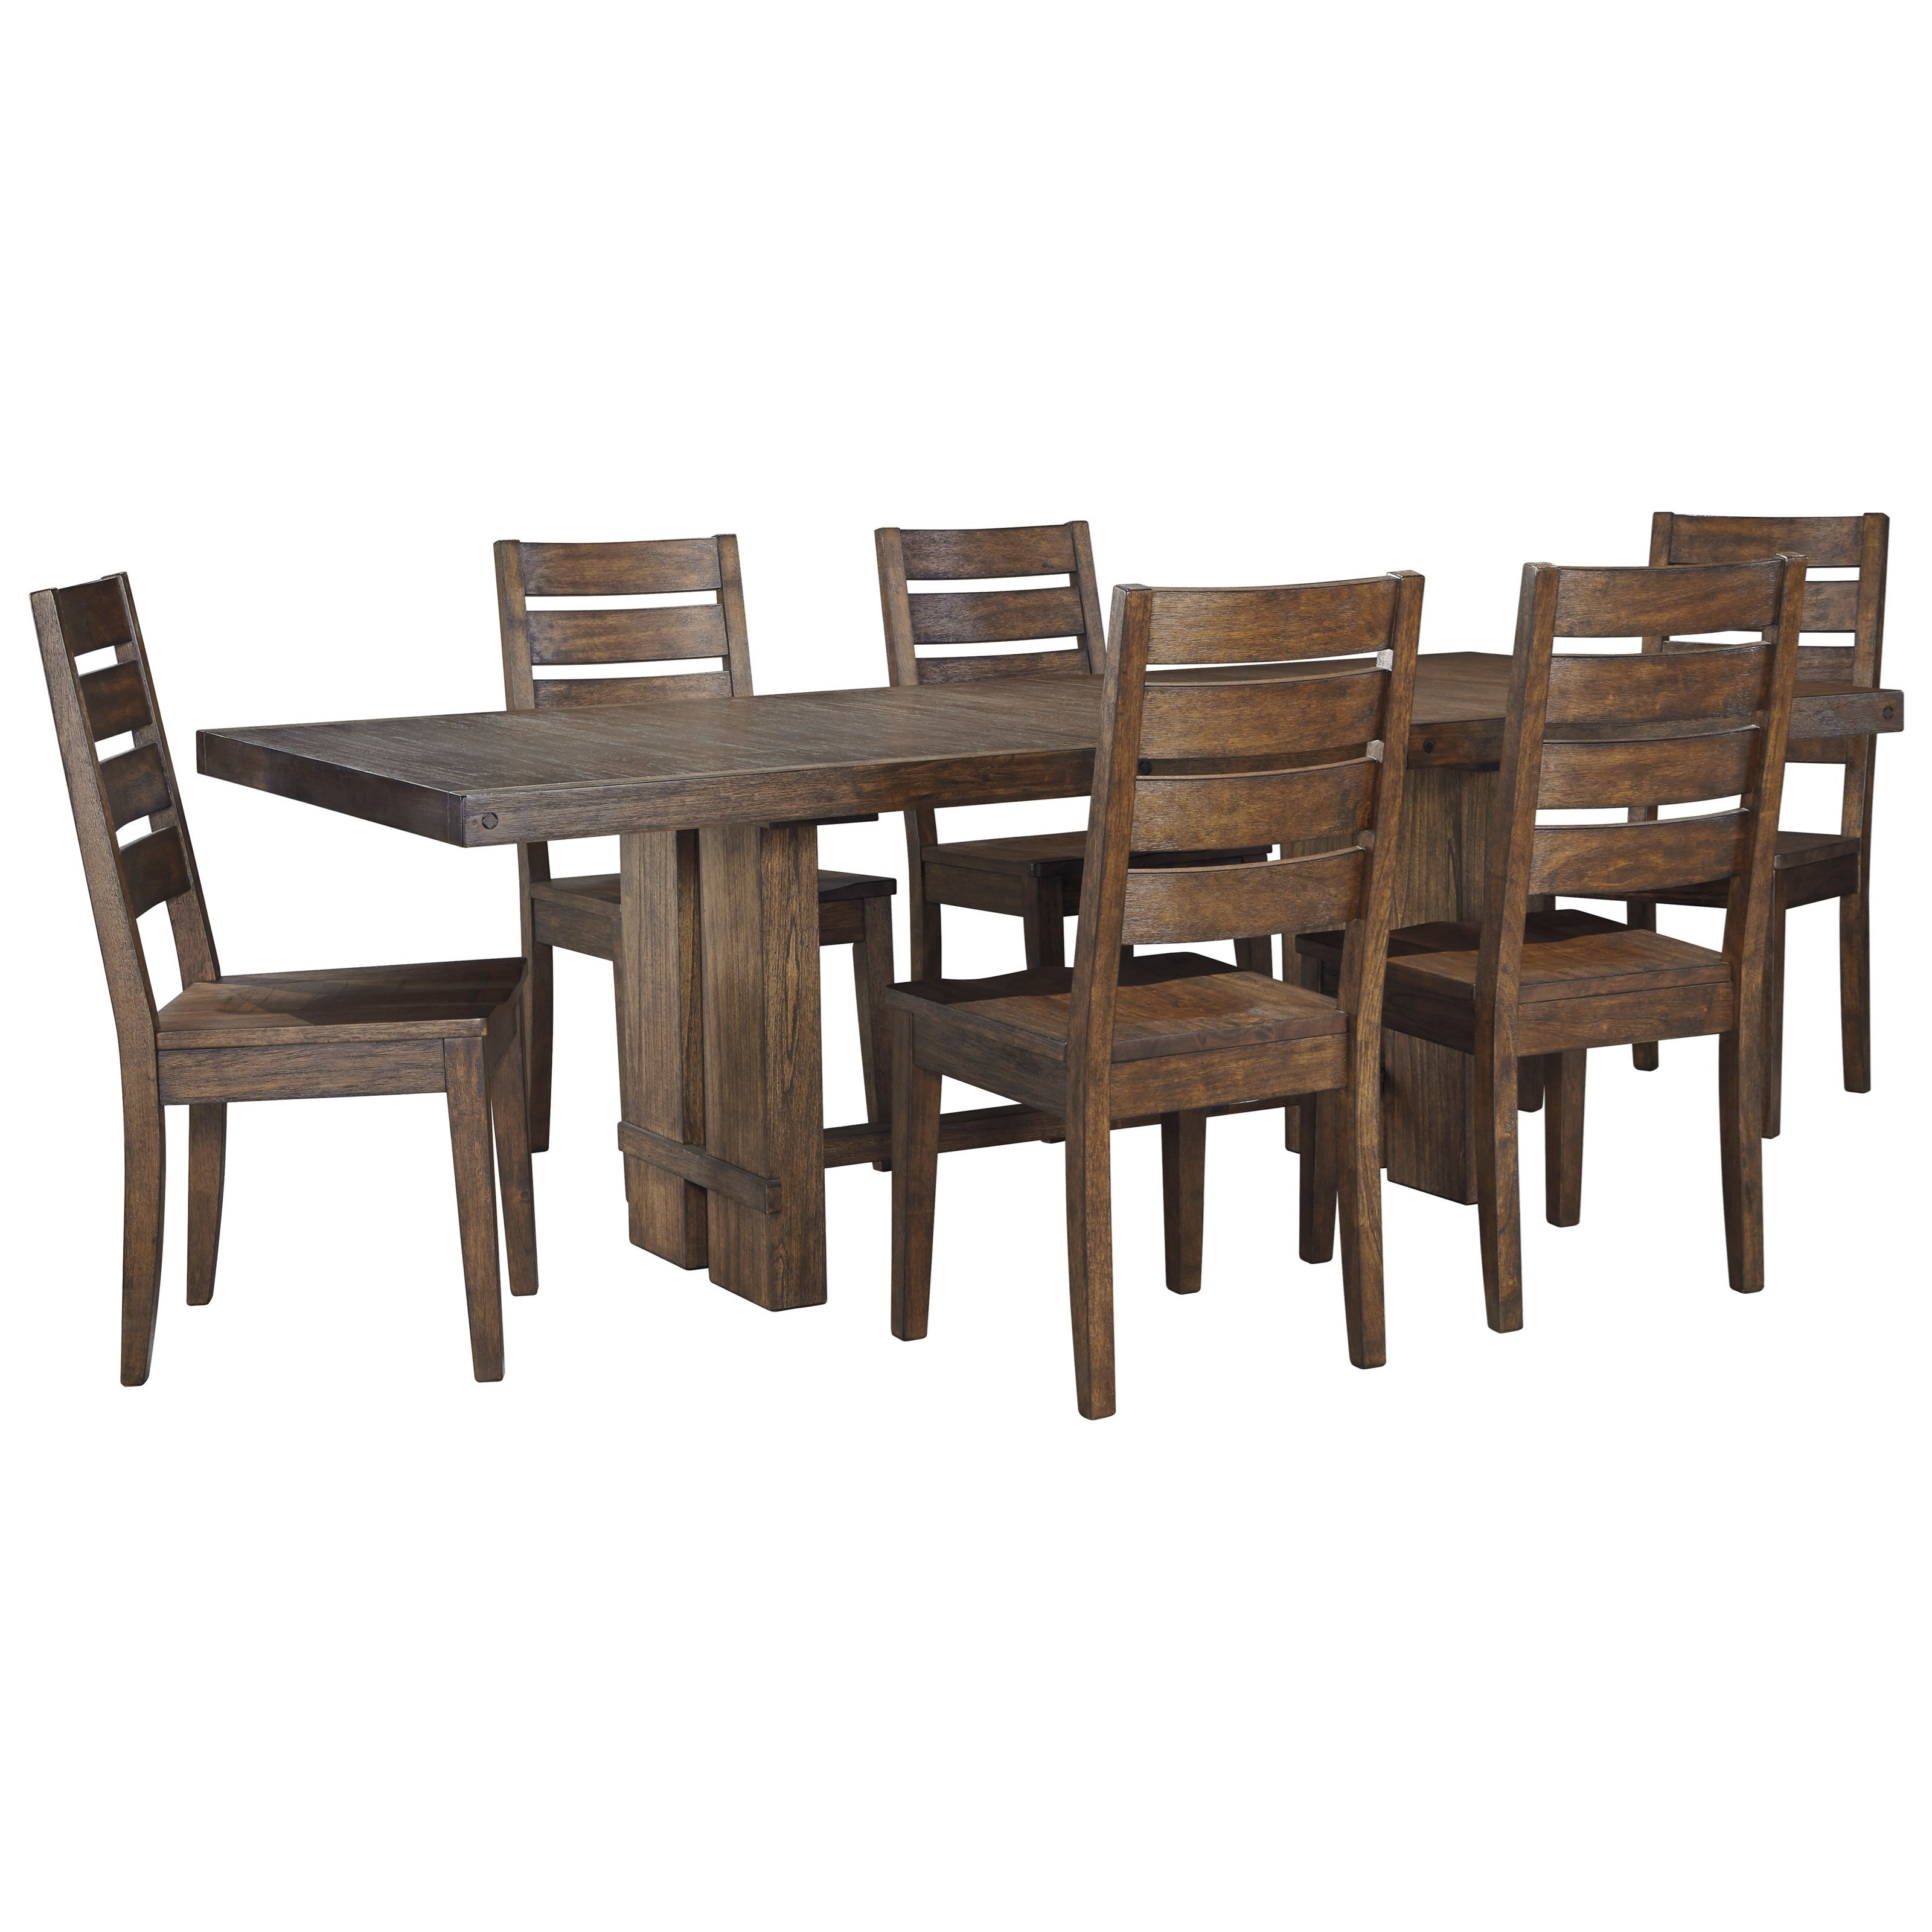 Signature Design by Ashley Leystone 7 Piece Rectangular Table and Chair Set - Item Number: D614-35+6x01